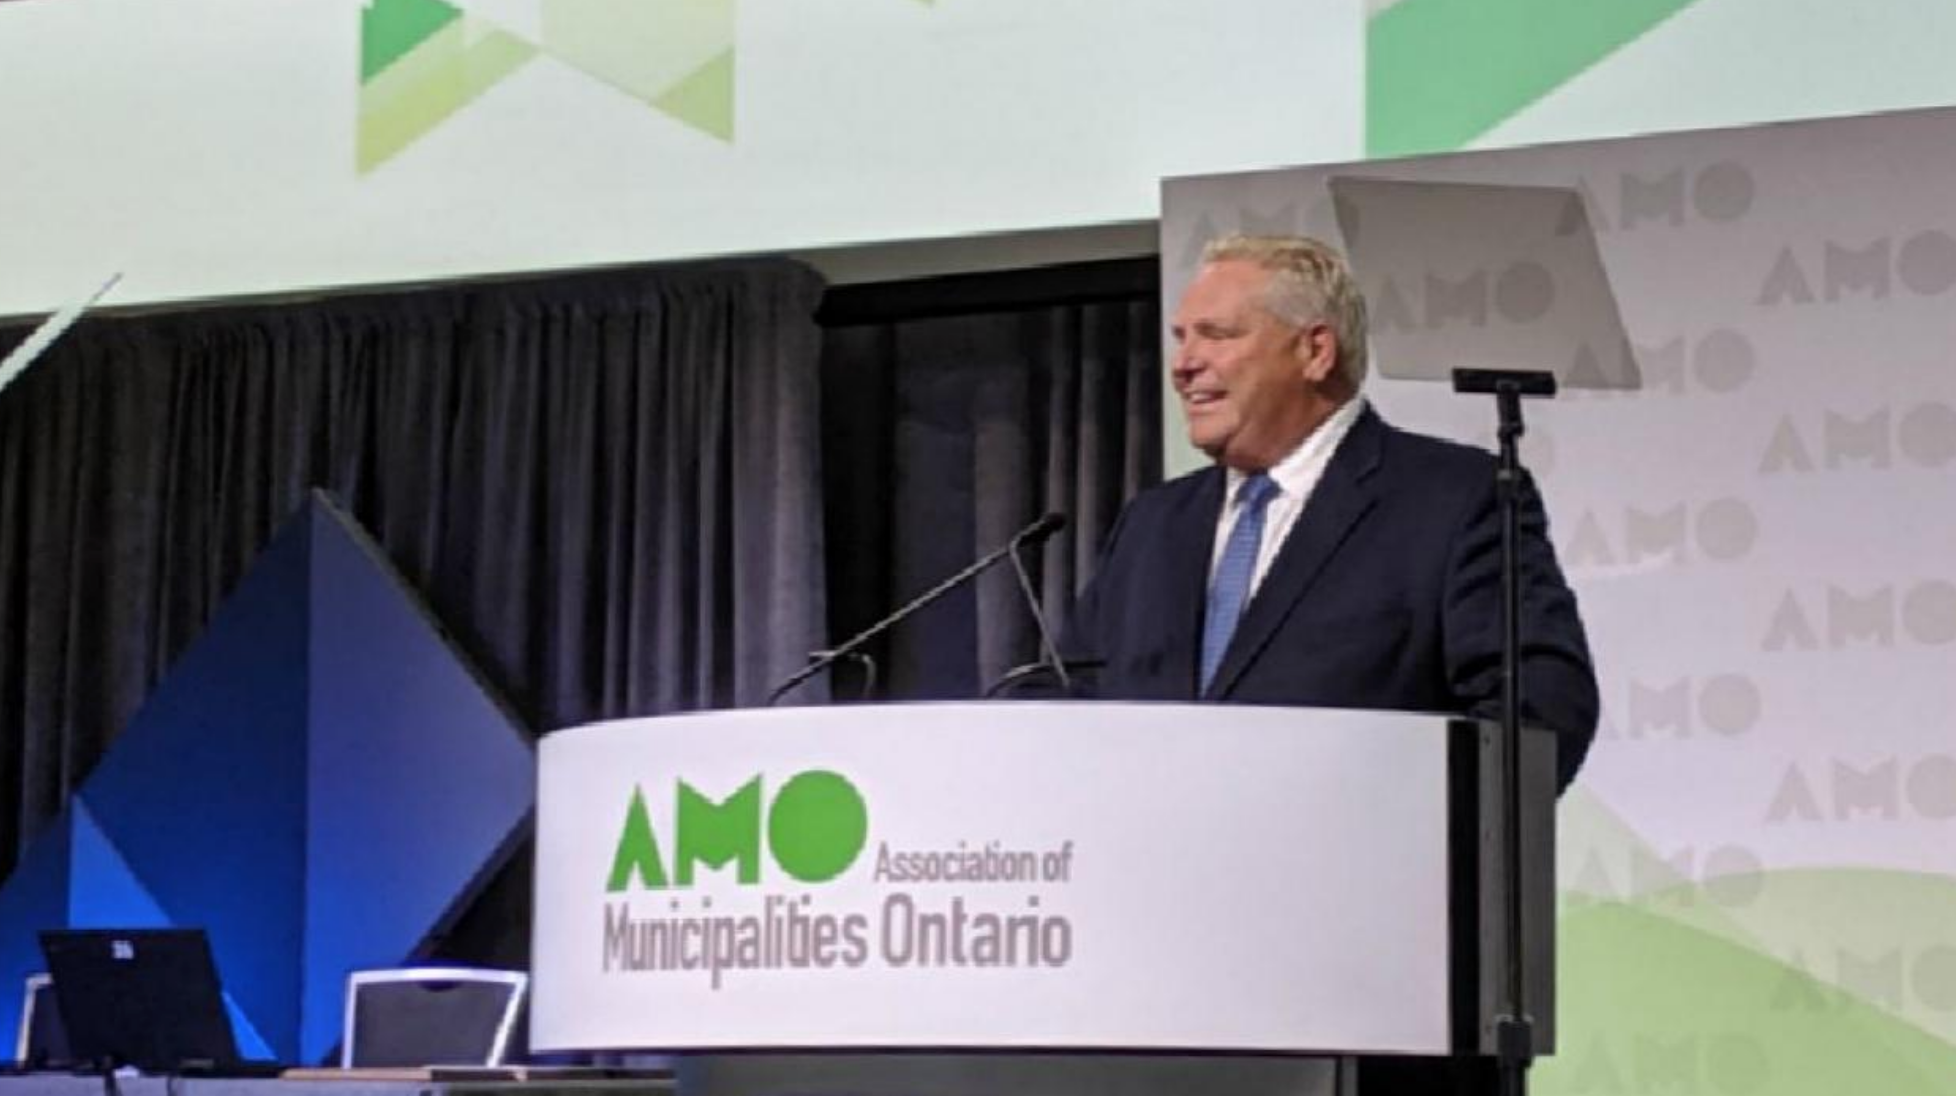 Association of Ontario Municipalities calls for renewing tax sharing agreement with province